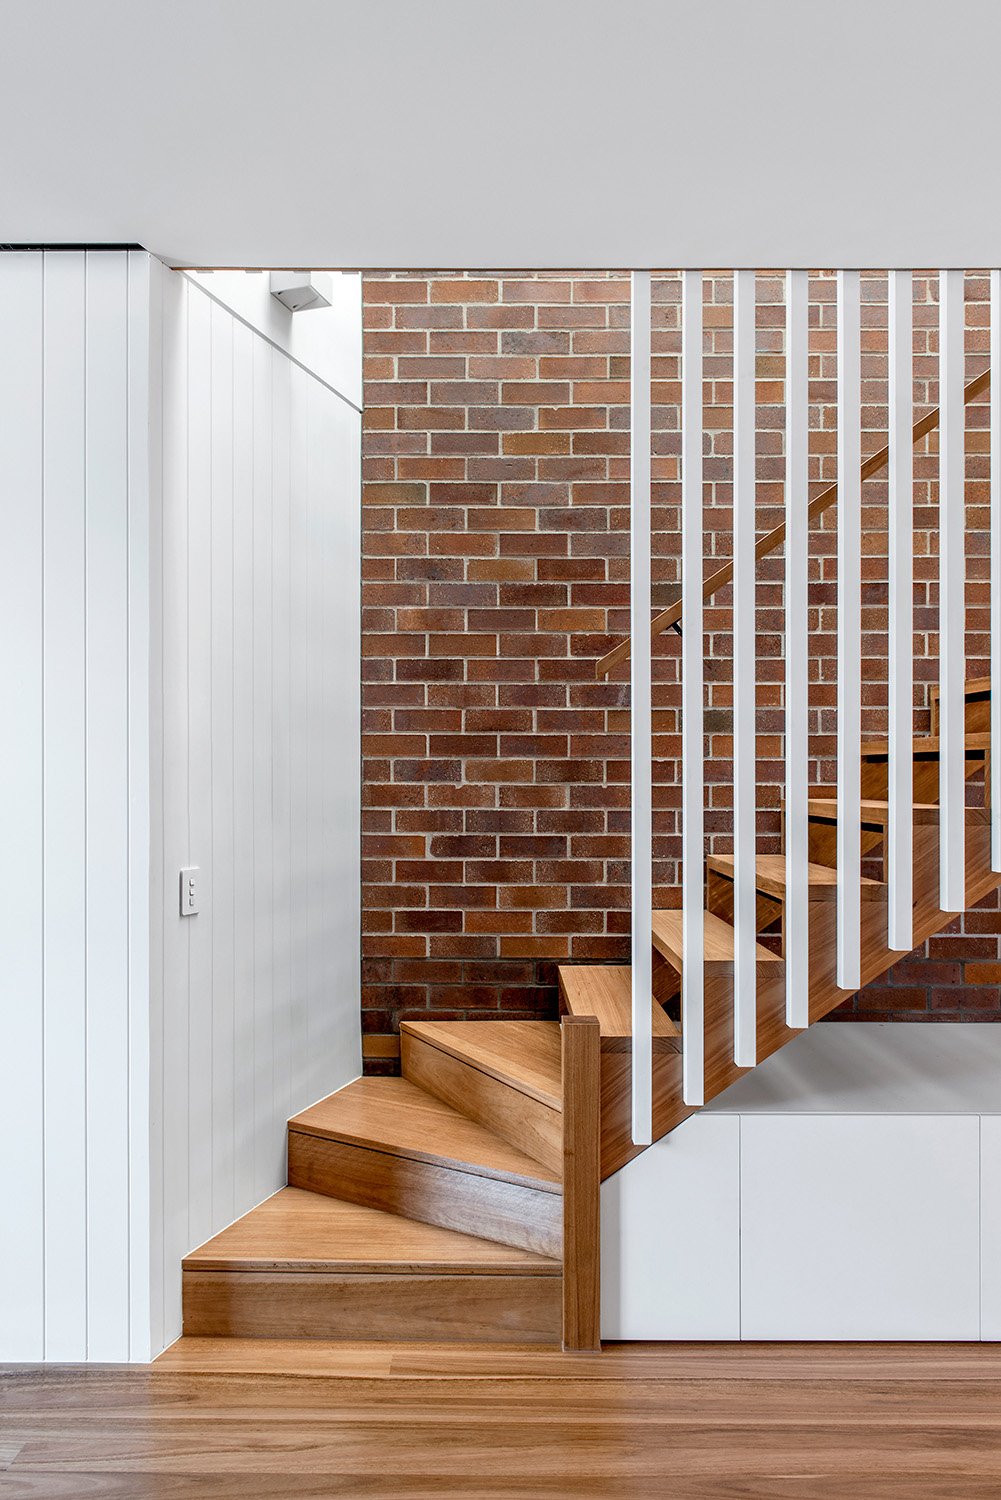 Staircase with integrated joinery Cathy Schusler